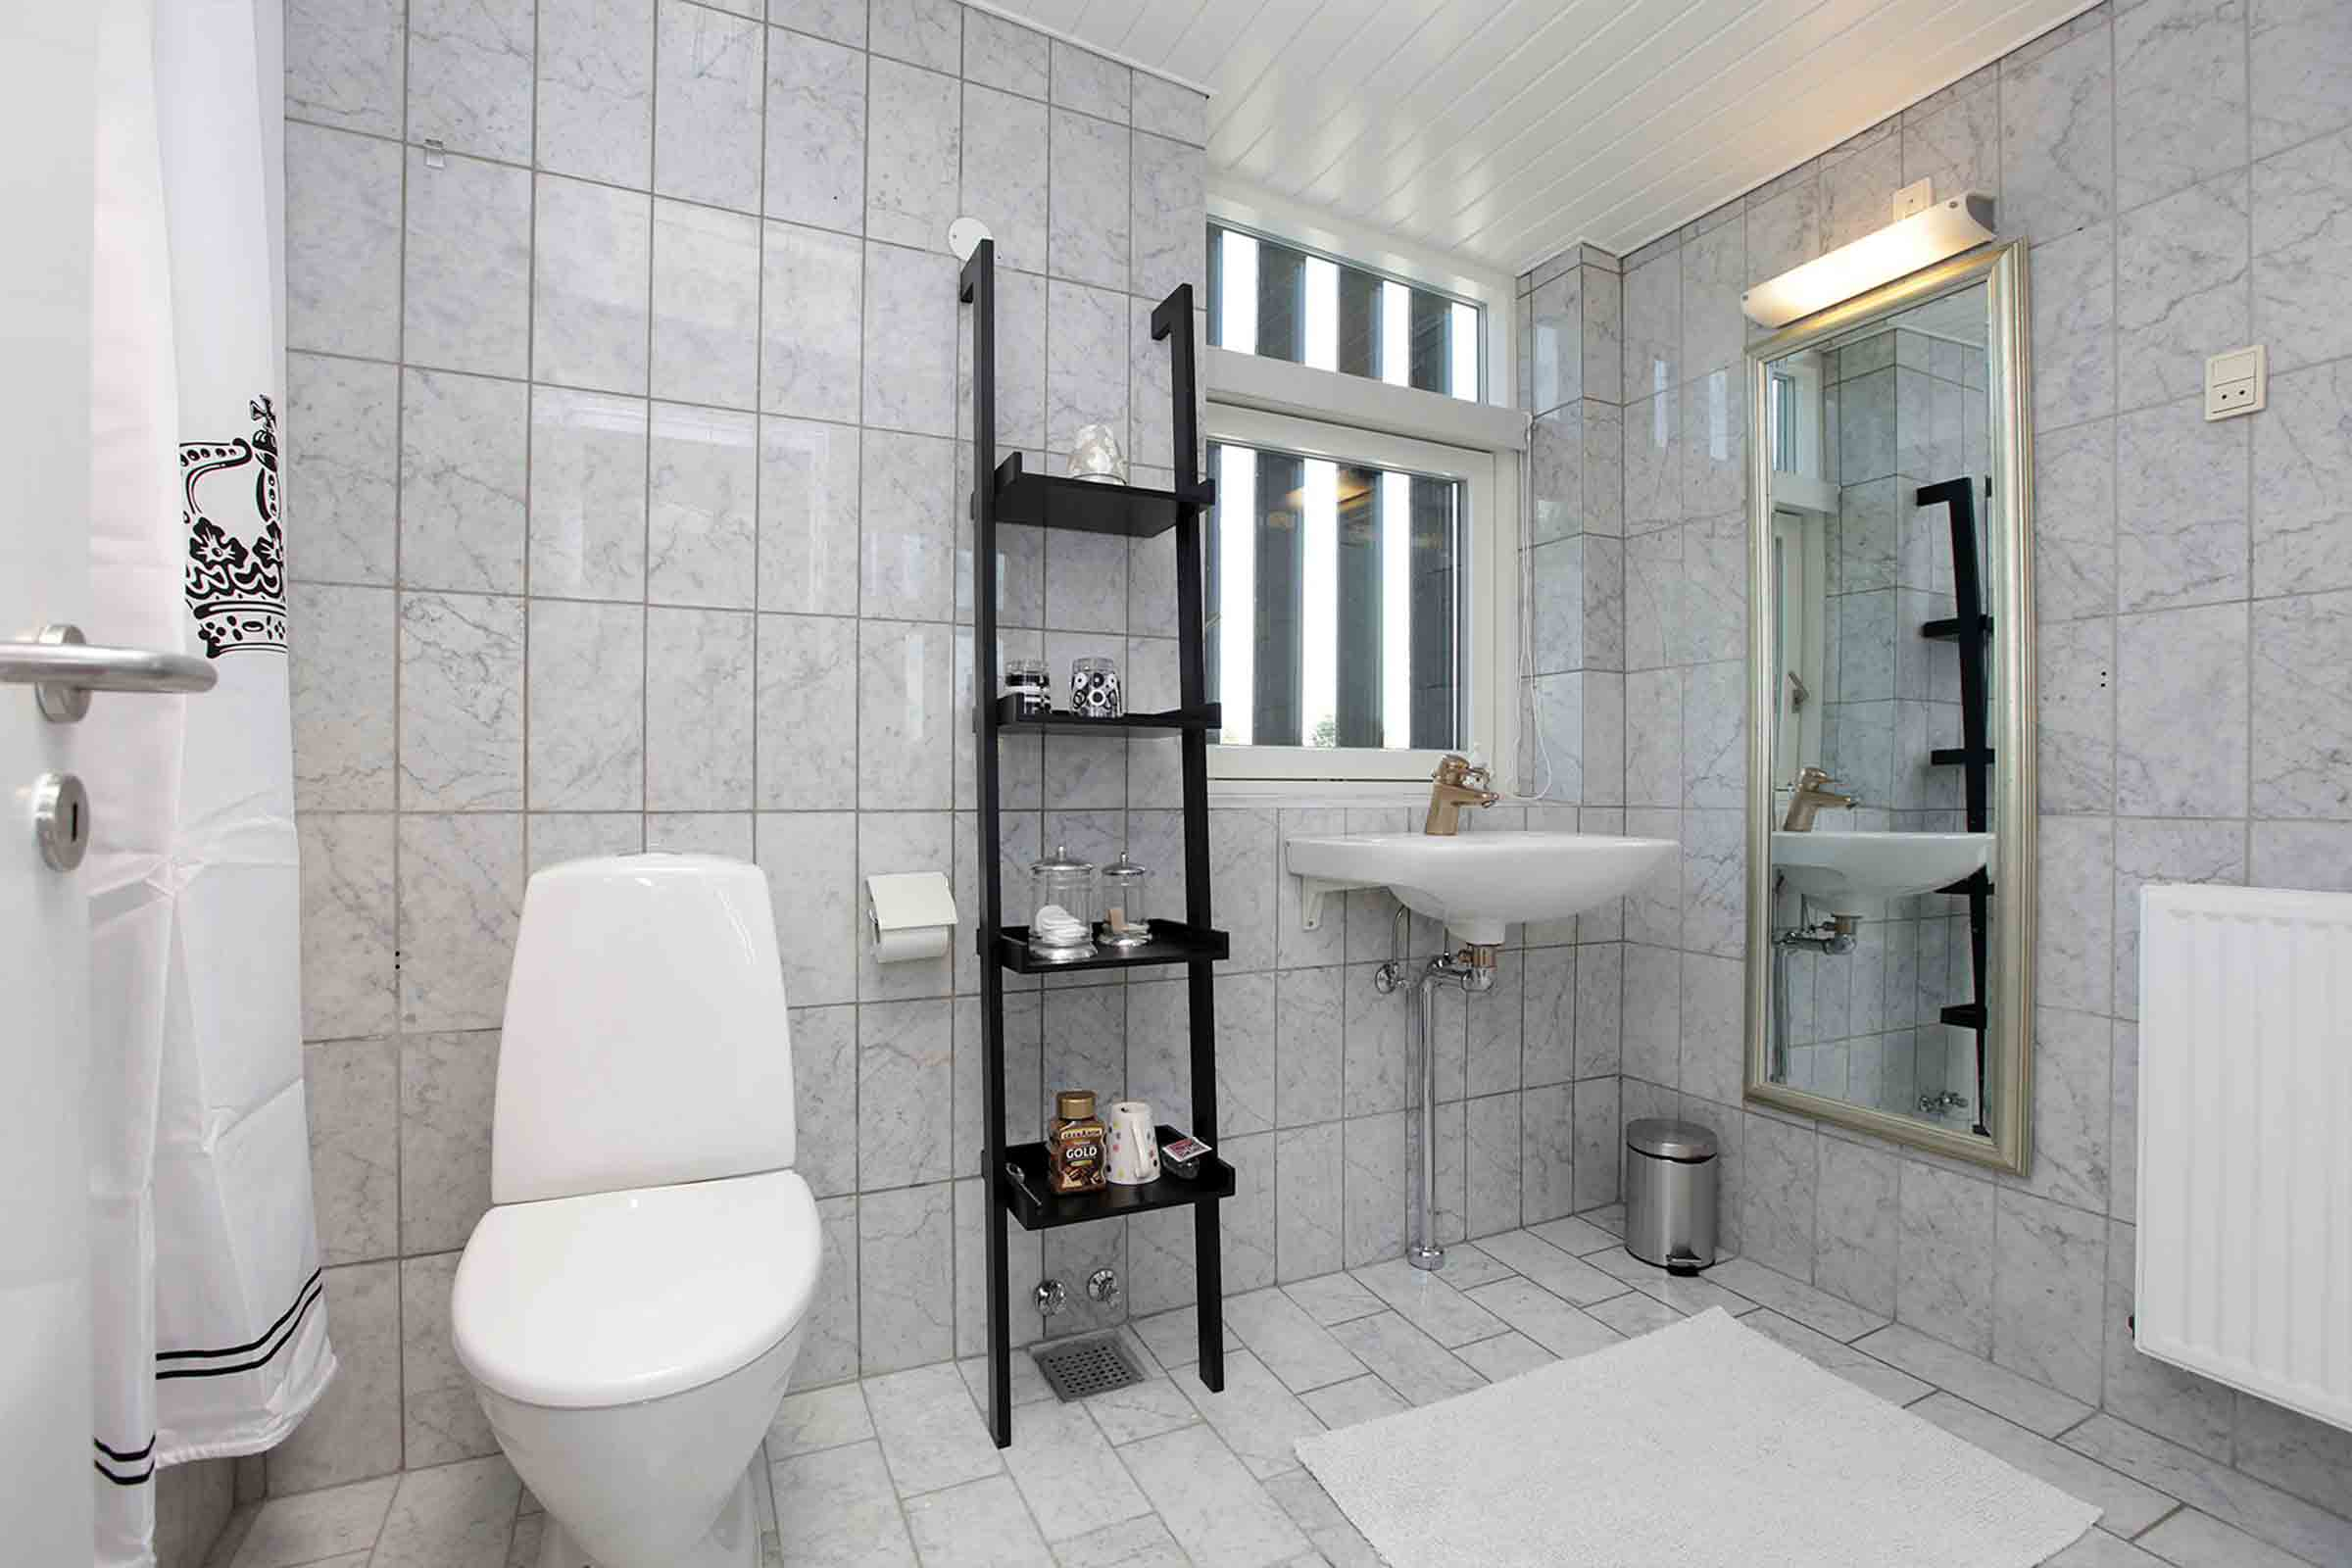 Shared bathroom with toiletries, sink, and toilet bowl